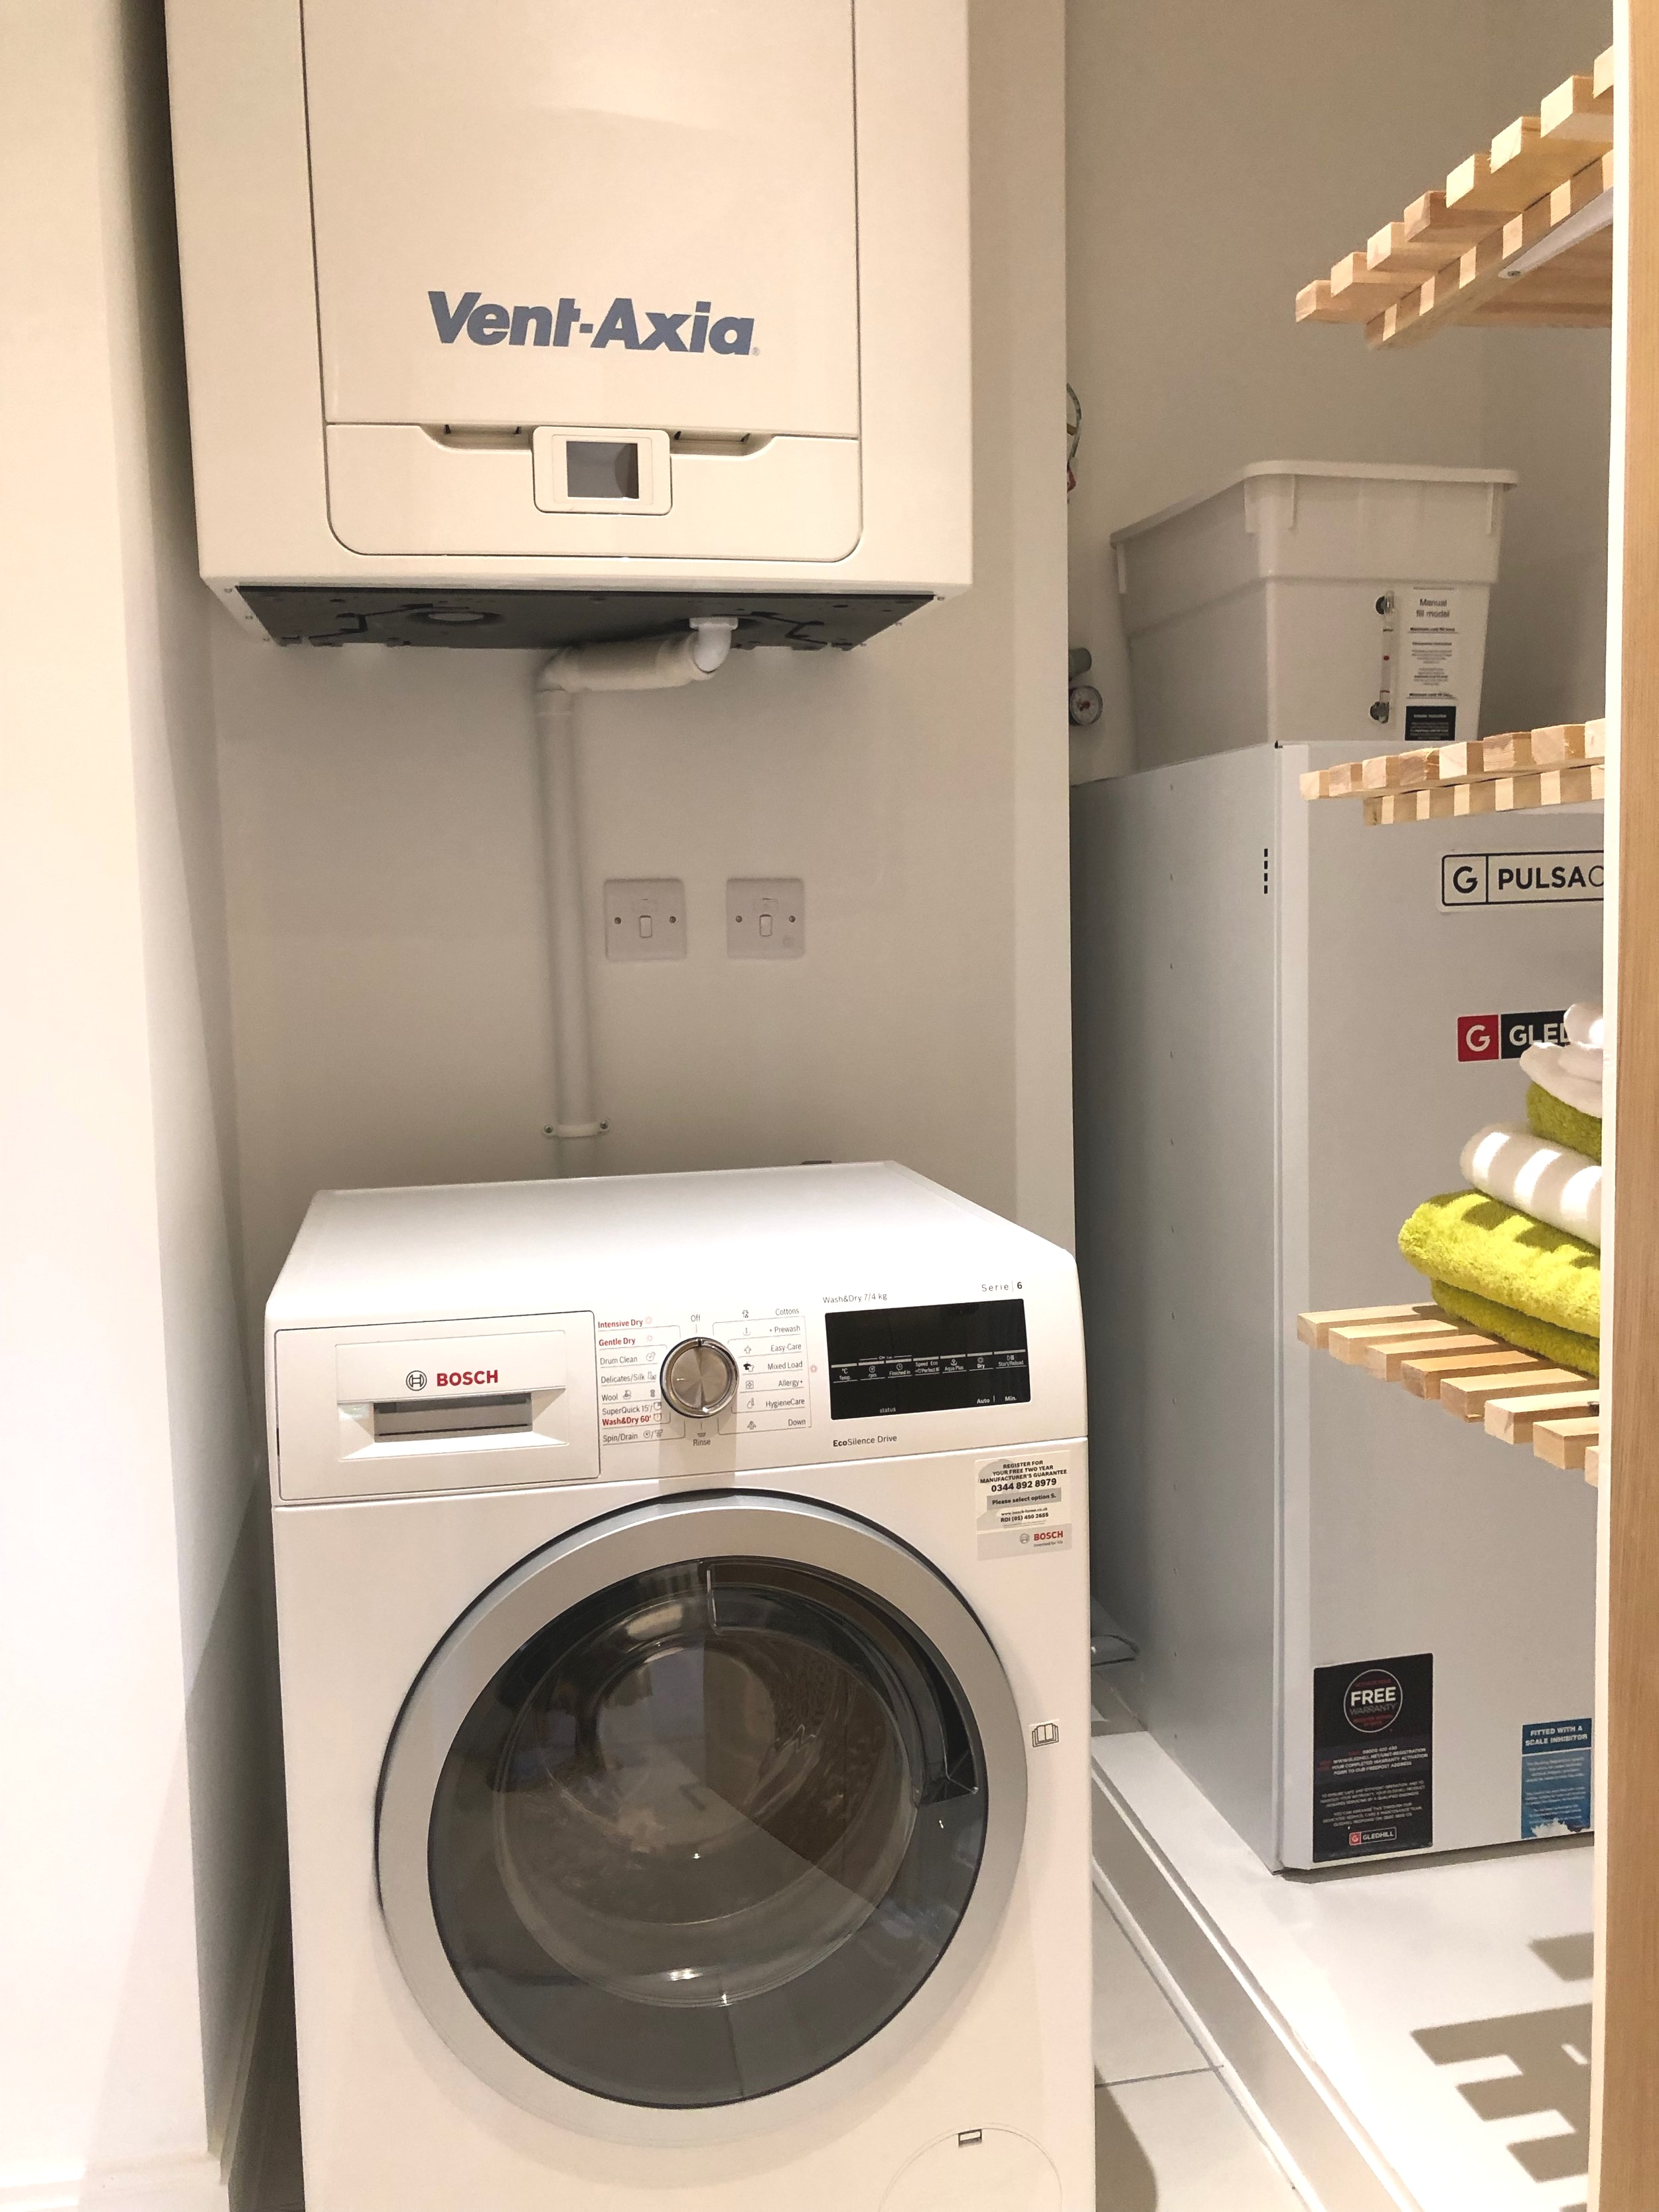 Laundry room in the apartment.